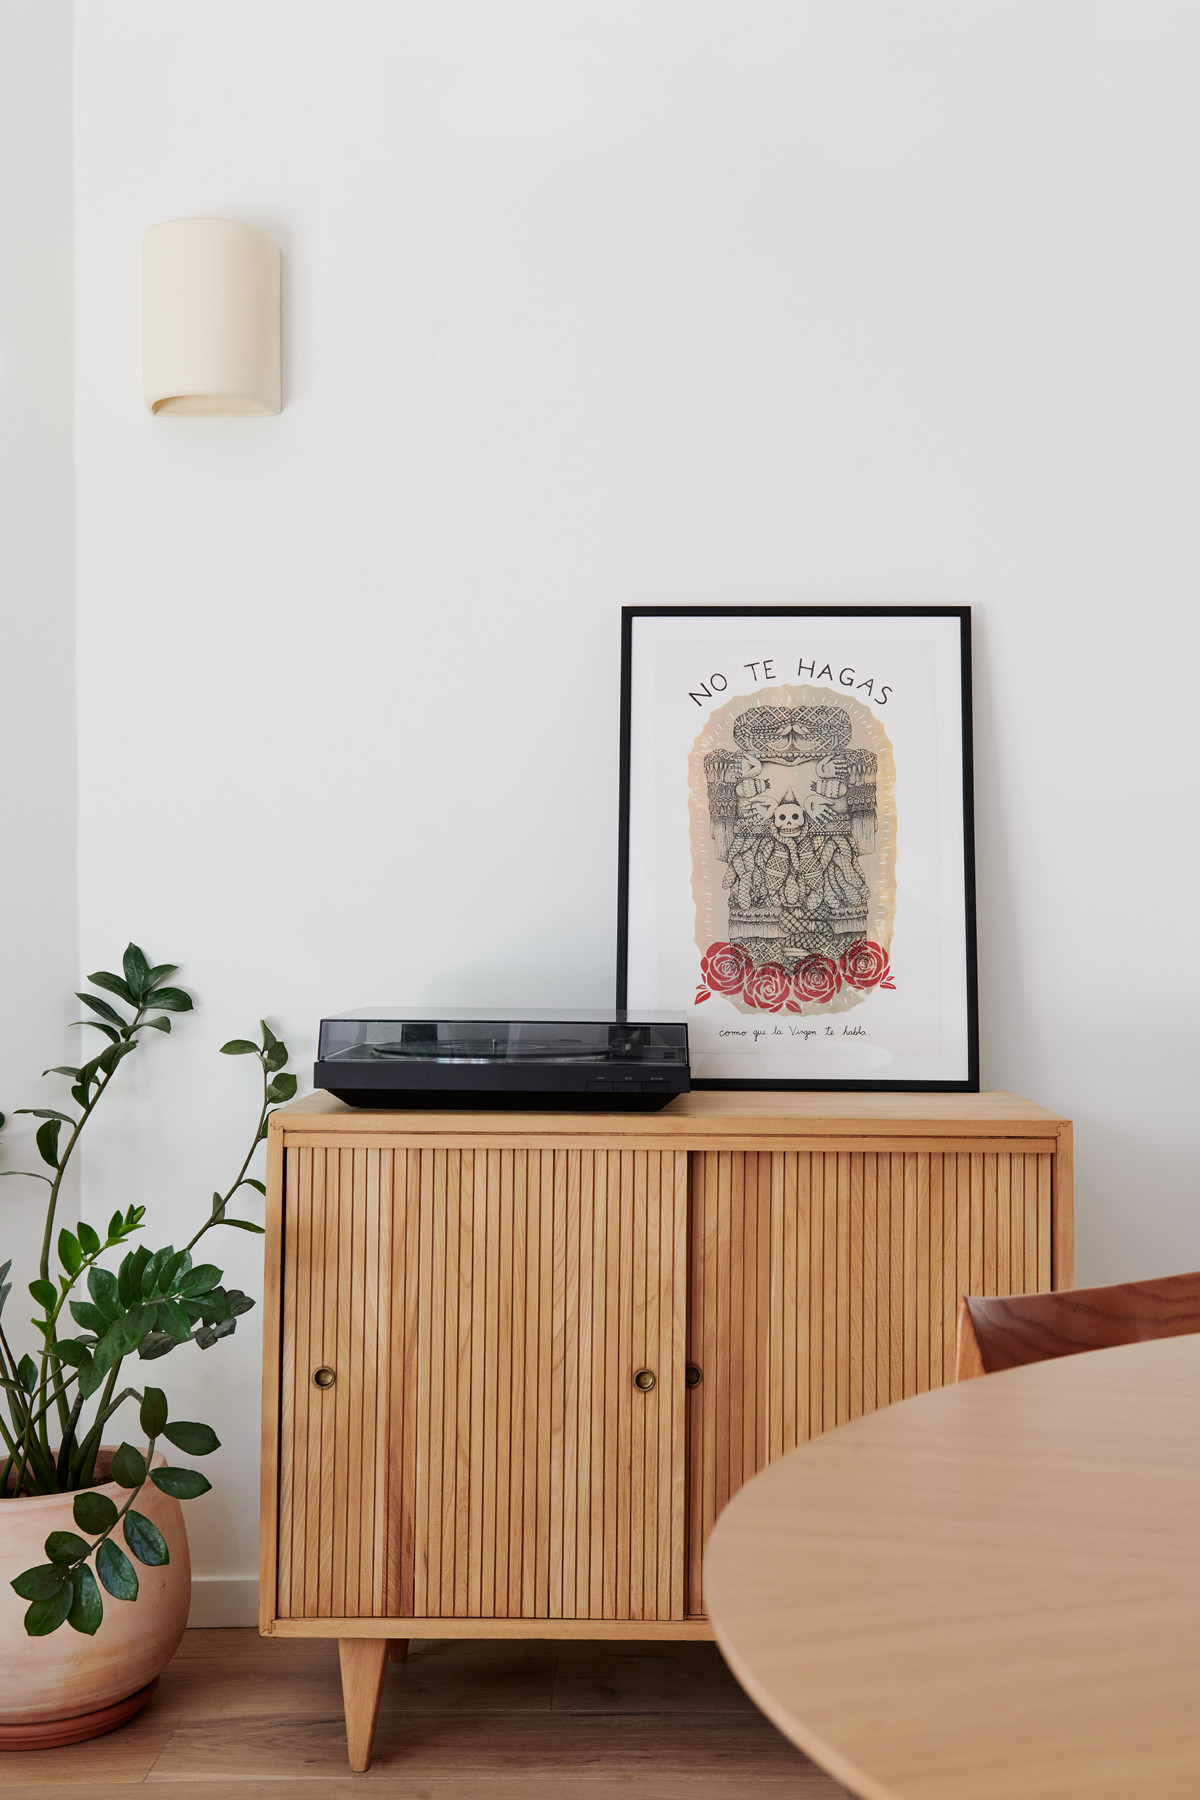 Artwork by del Rio's sister is proudly perched on the credenza sourced via Craigslist — while a ceramic lighting fixture, which del Rio acquired in New Mexico, sits next to it.